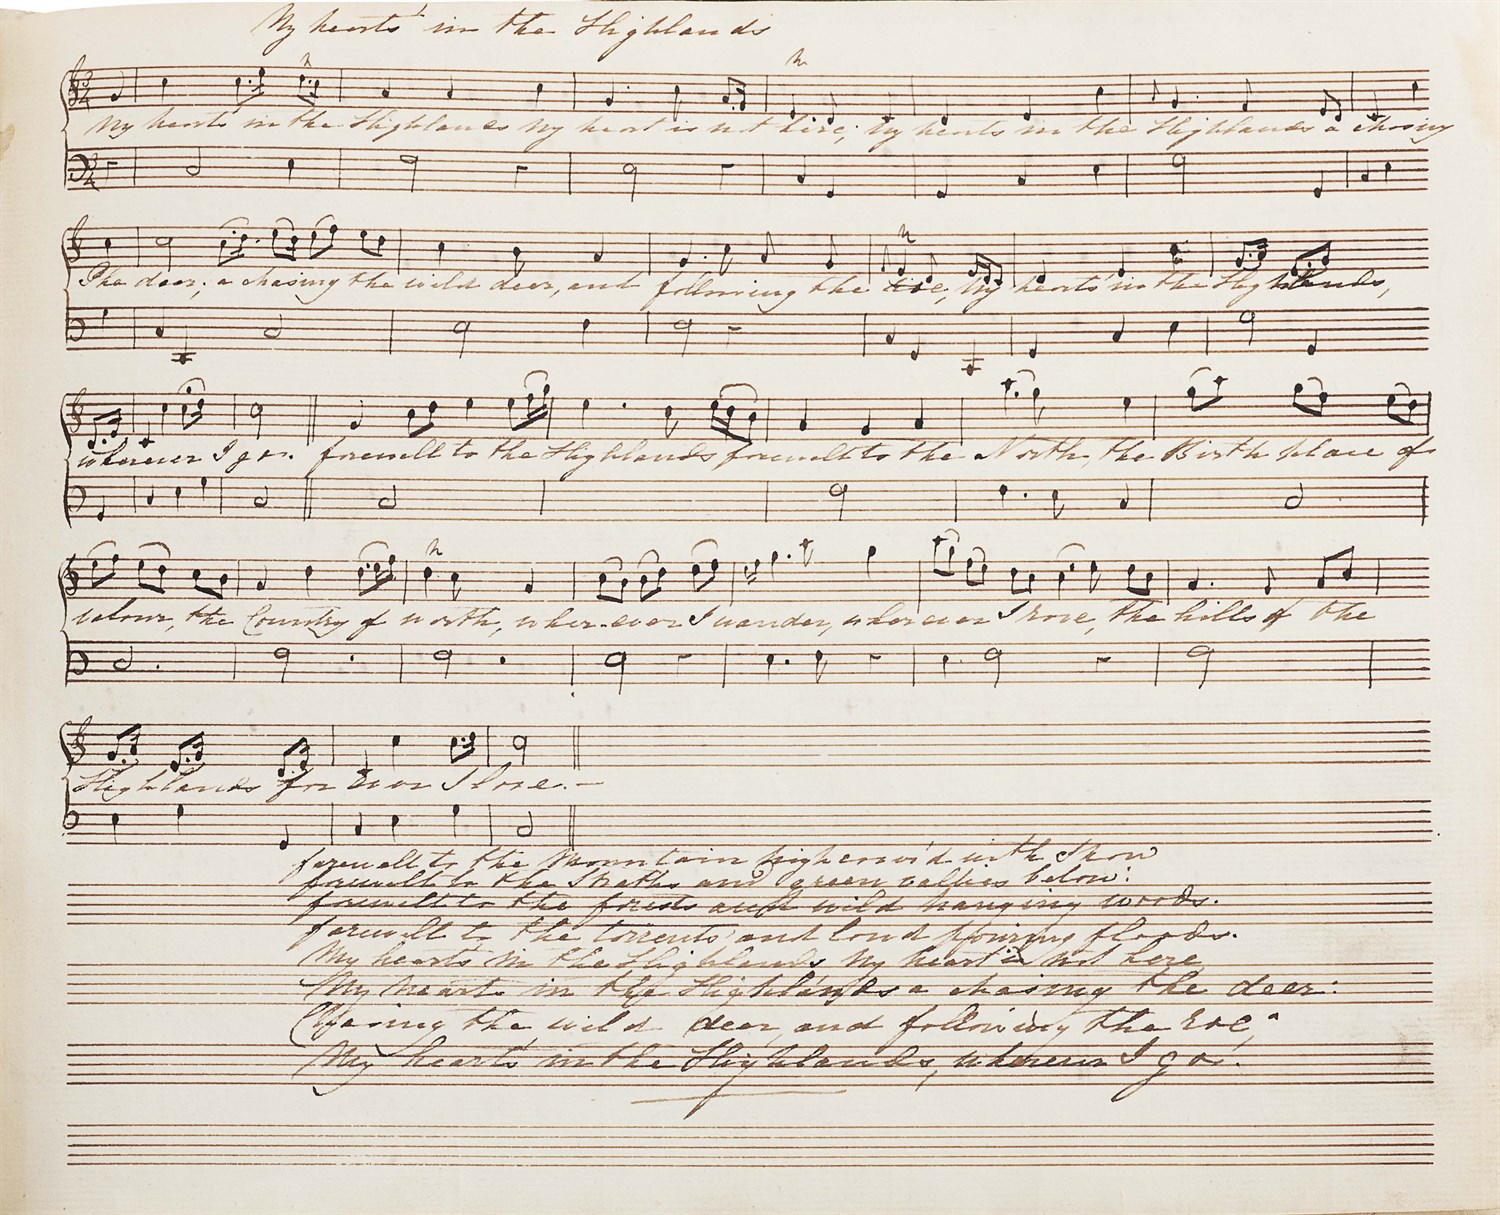 Lot 11-Jacobite and Scottish manuscript folk music, including words by Robert Burns, early 19th century